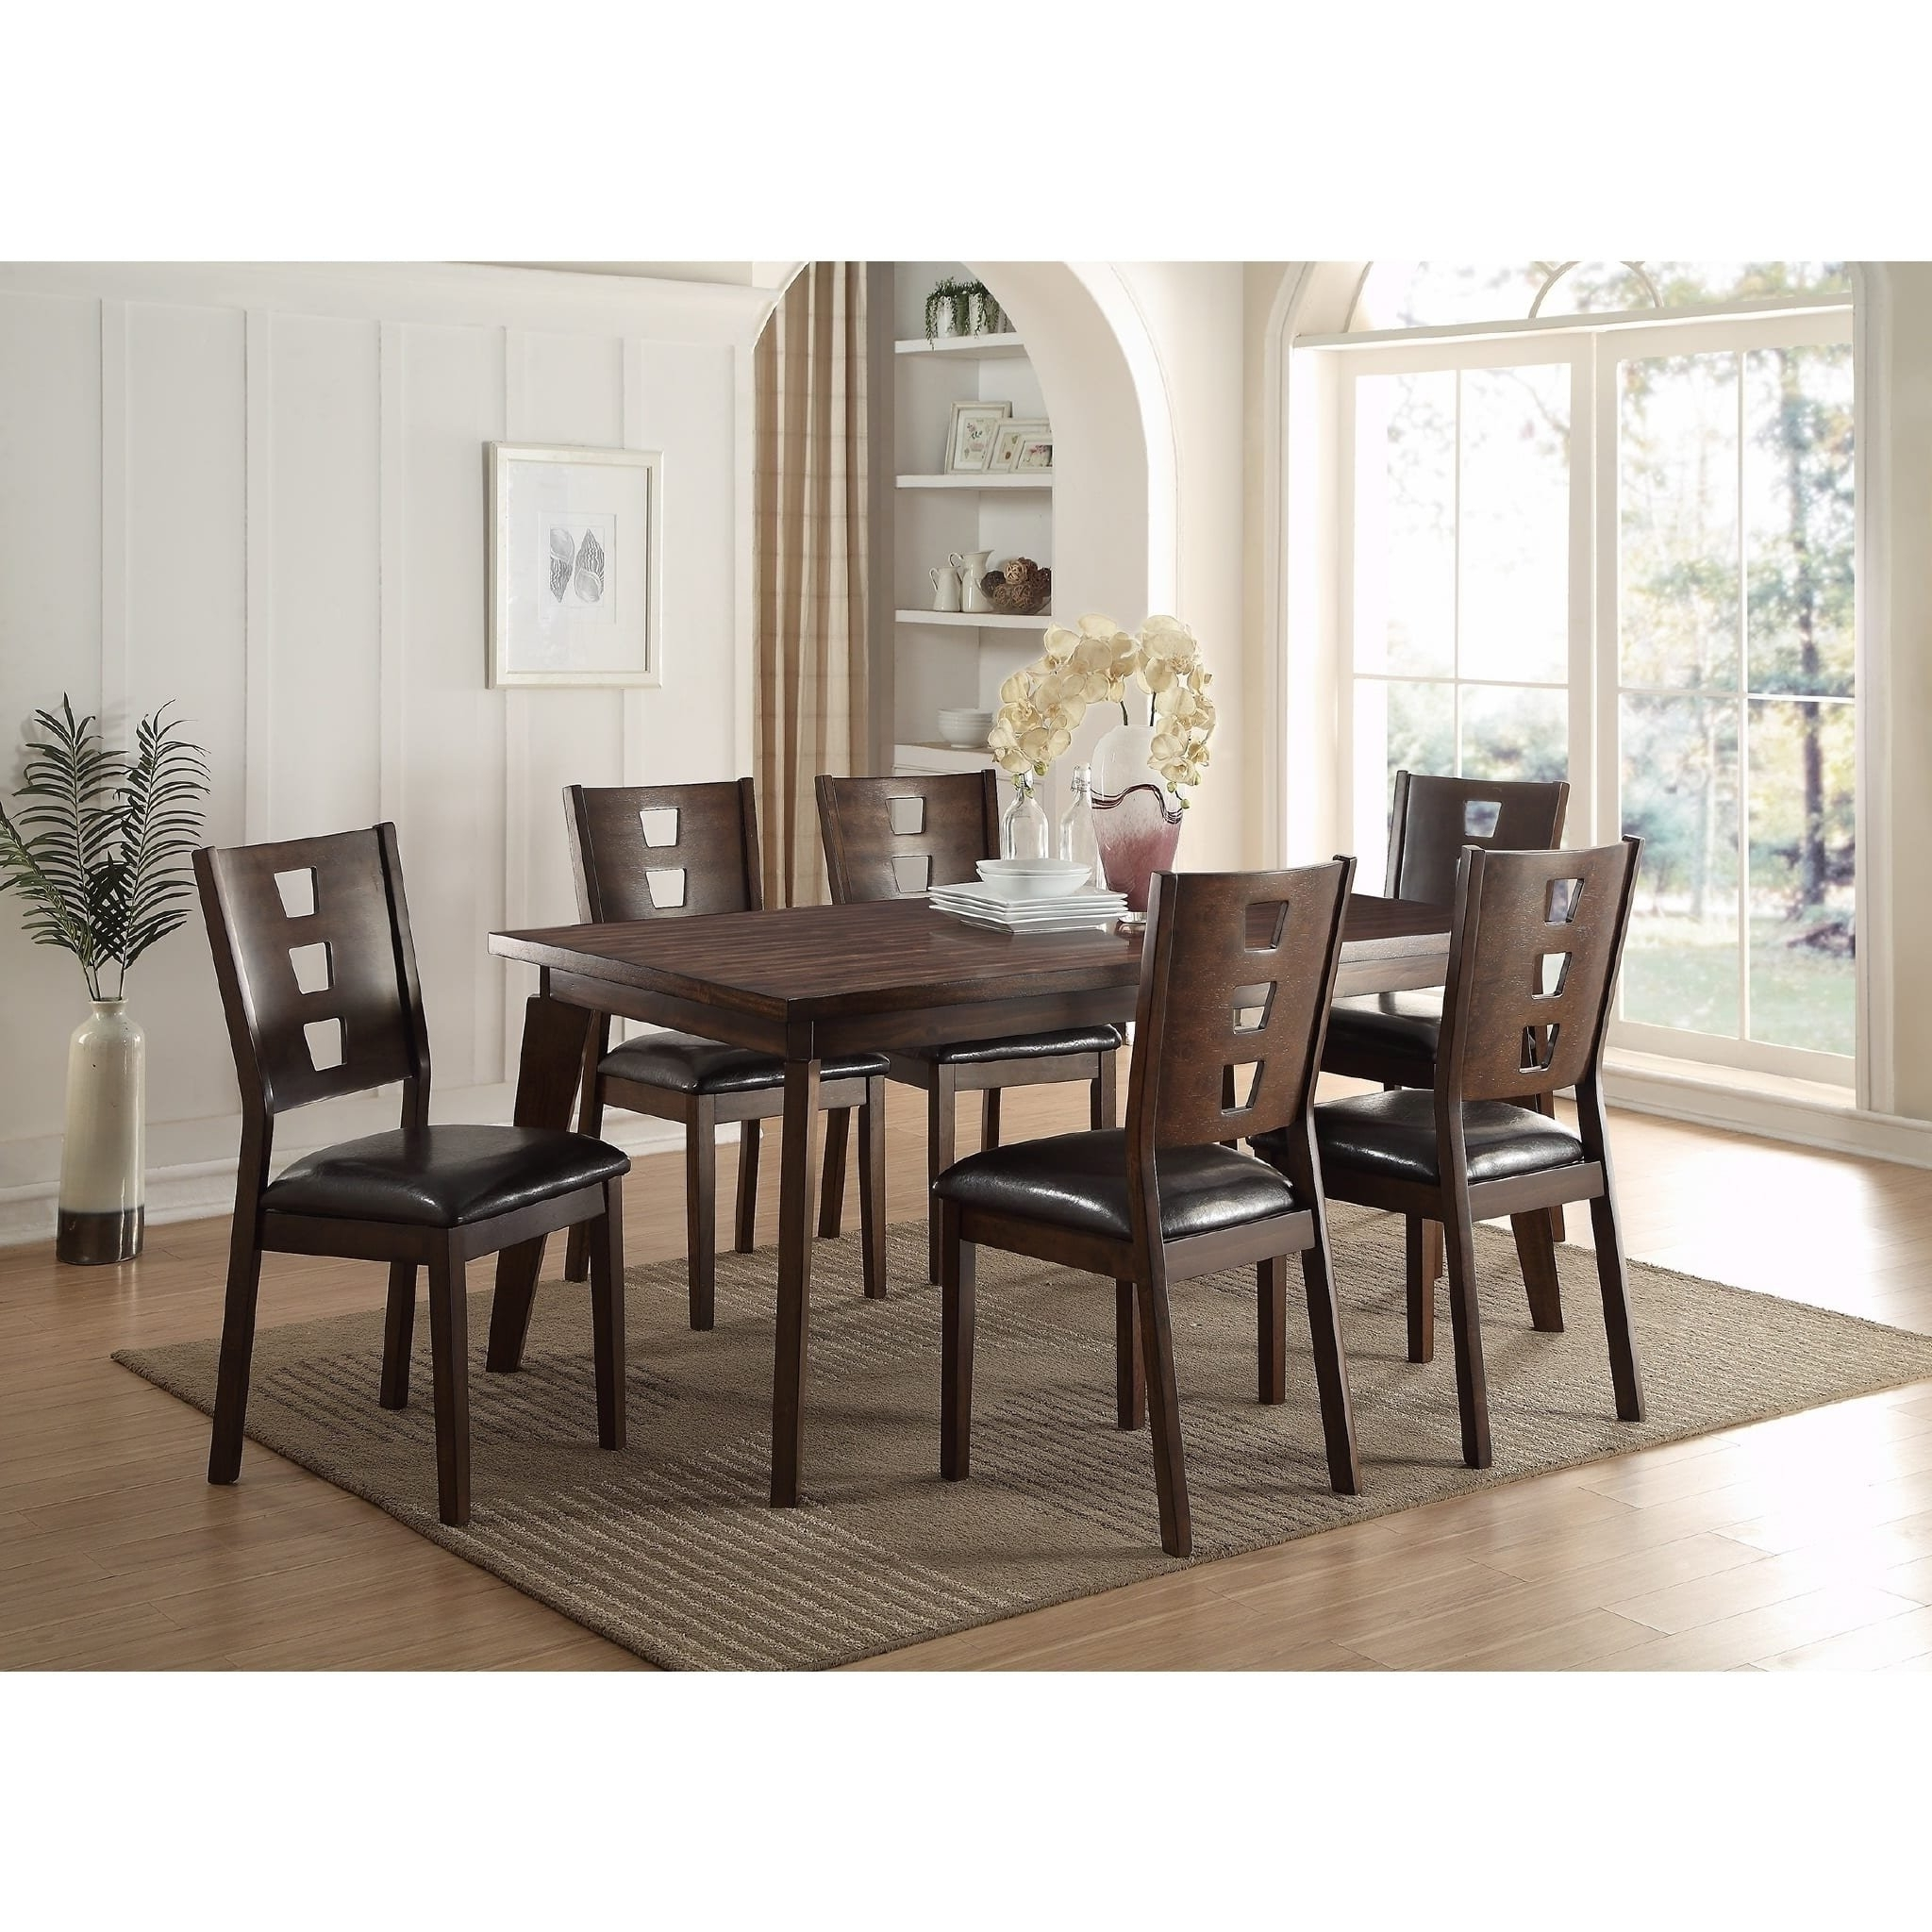 Popular Shop Joey 7 Piece Dining Set – Free Shipping Today – Overstock Intended For Caira 7 Piece Rectangular Dining Sets With Upholstered Side Chairs (View 19 of 25)